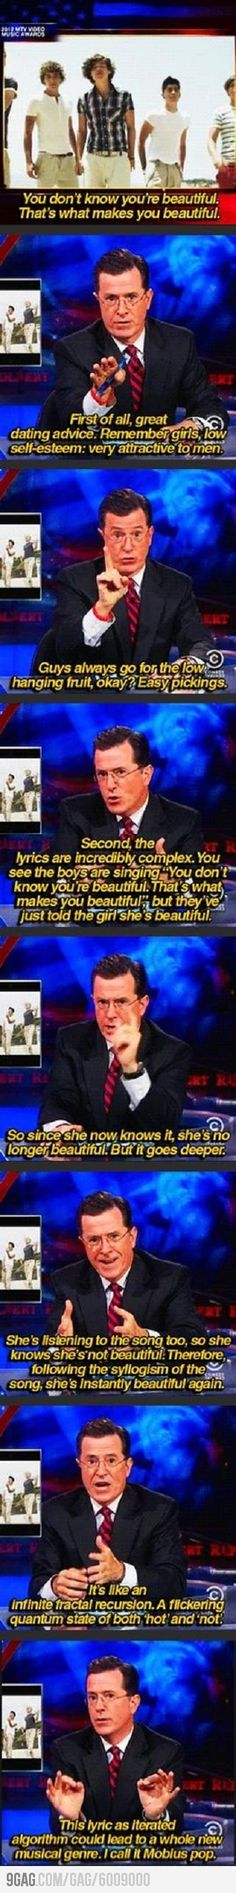 """""""You don't know you're beautiful. That's what makes you beautiful."""" Loved this episode. #StephenColbert"""